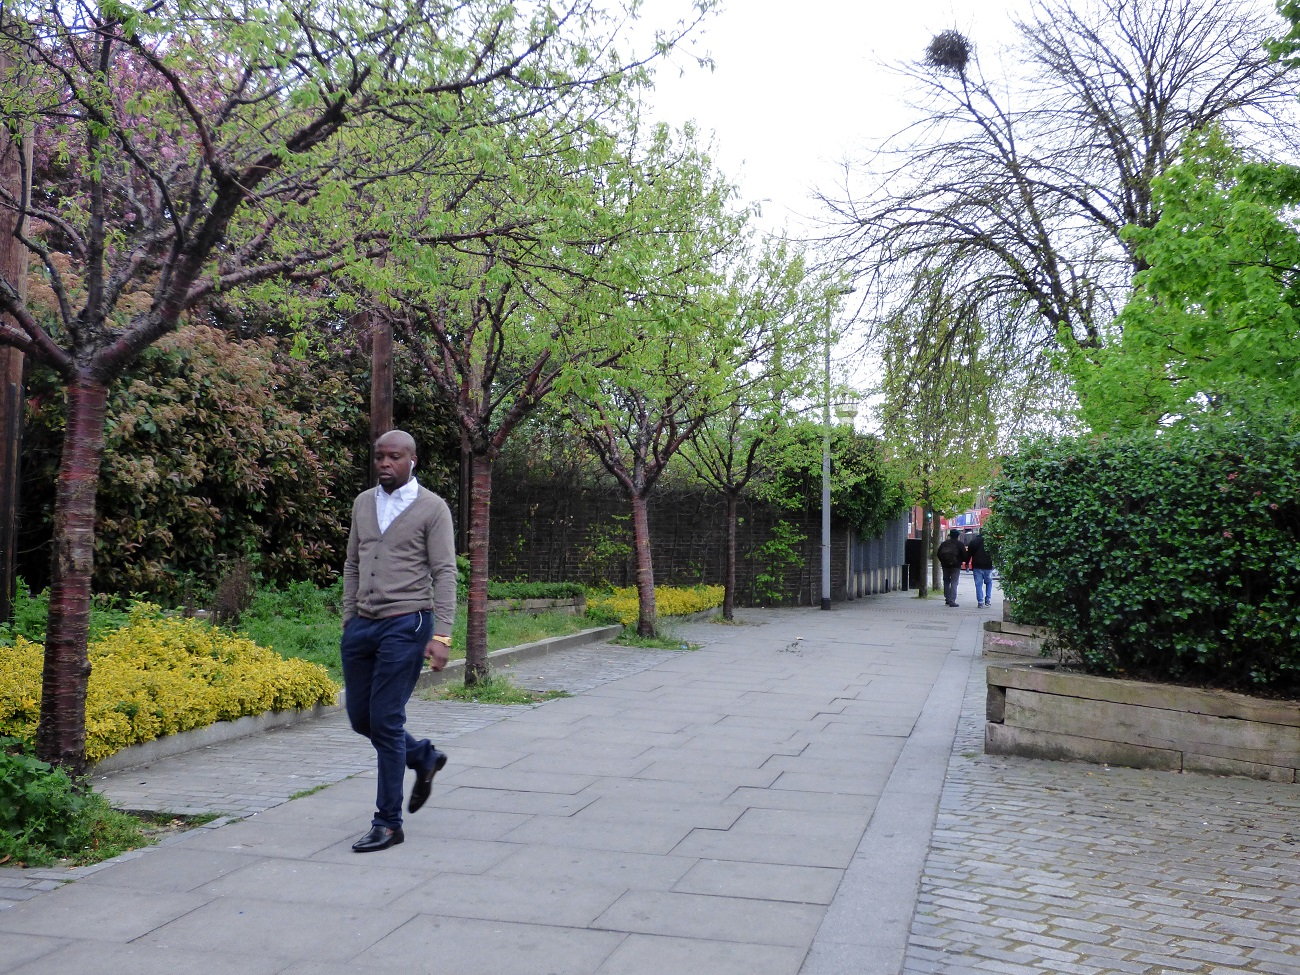 20170414_Hackney_Upper-Clapton-Road_A-breath-of-fresh-air-along-Upper-Clapton-Road